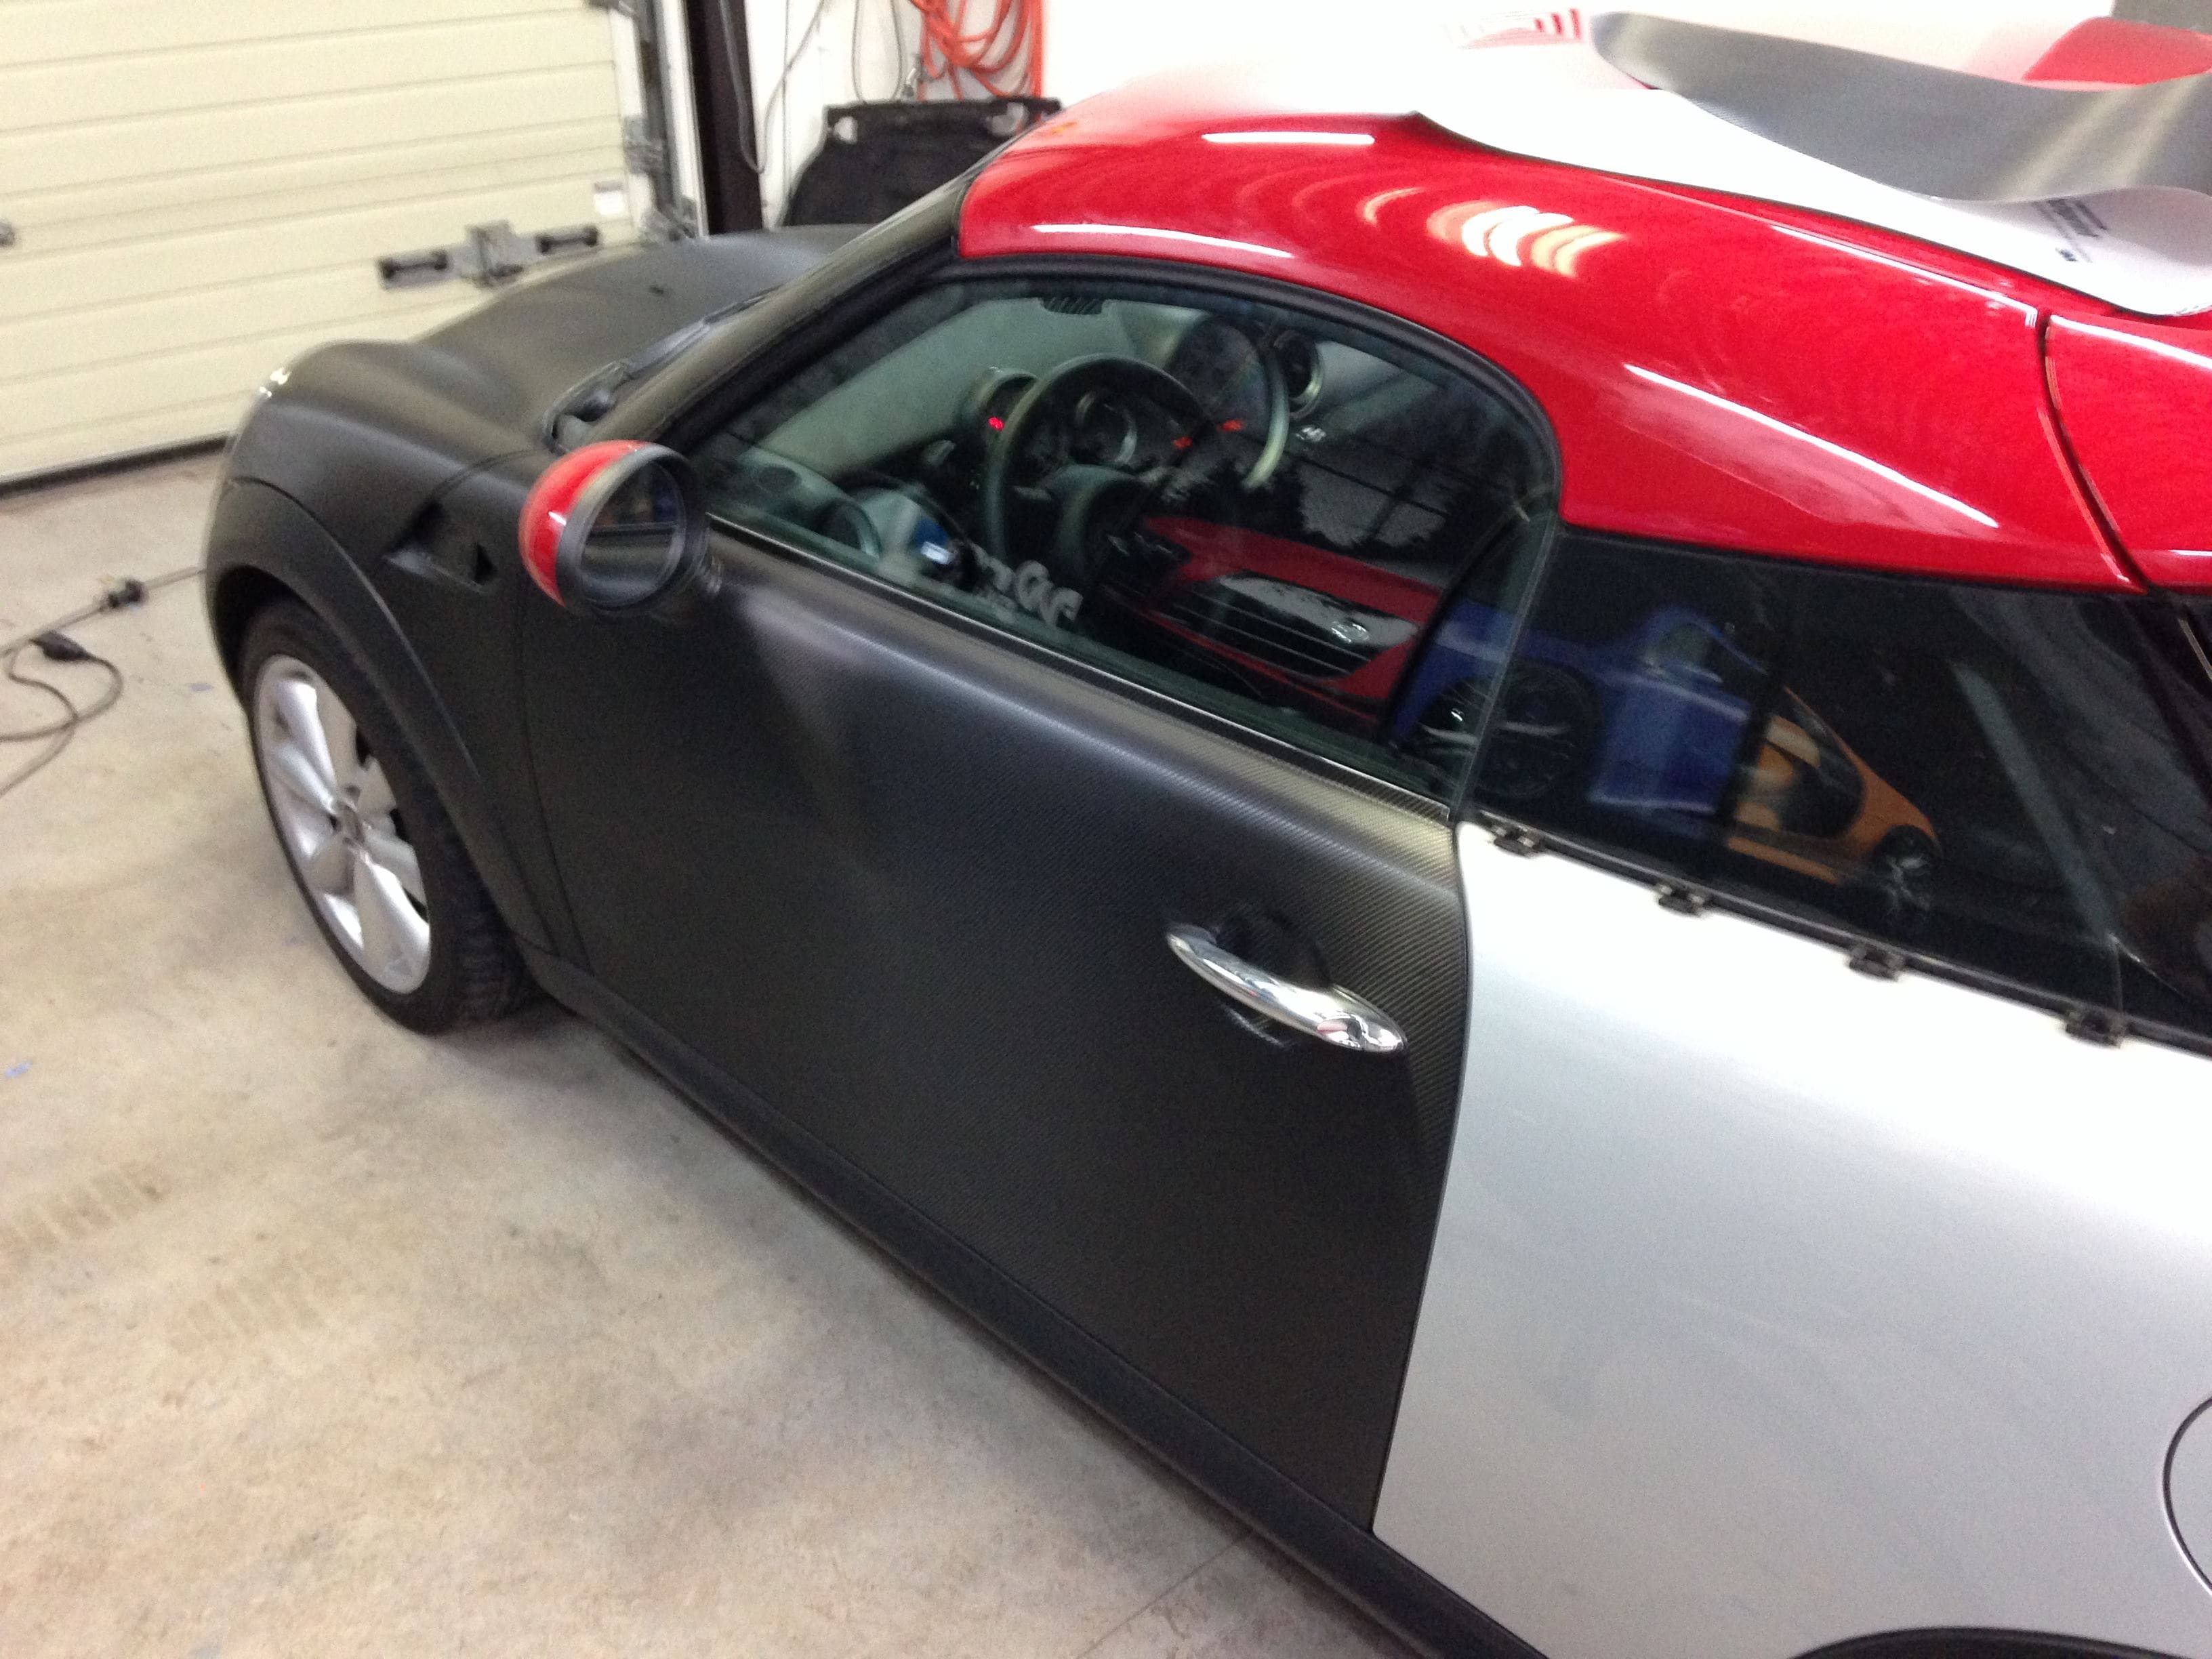 Mini Cooper Coupe in Carbon Wrap met Rode accenten, Carwrapping door Wrapmyride.nu Foto-nr:6389, ©2020